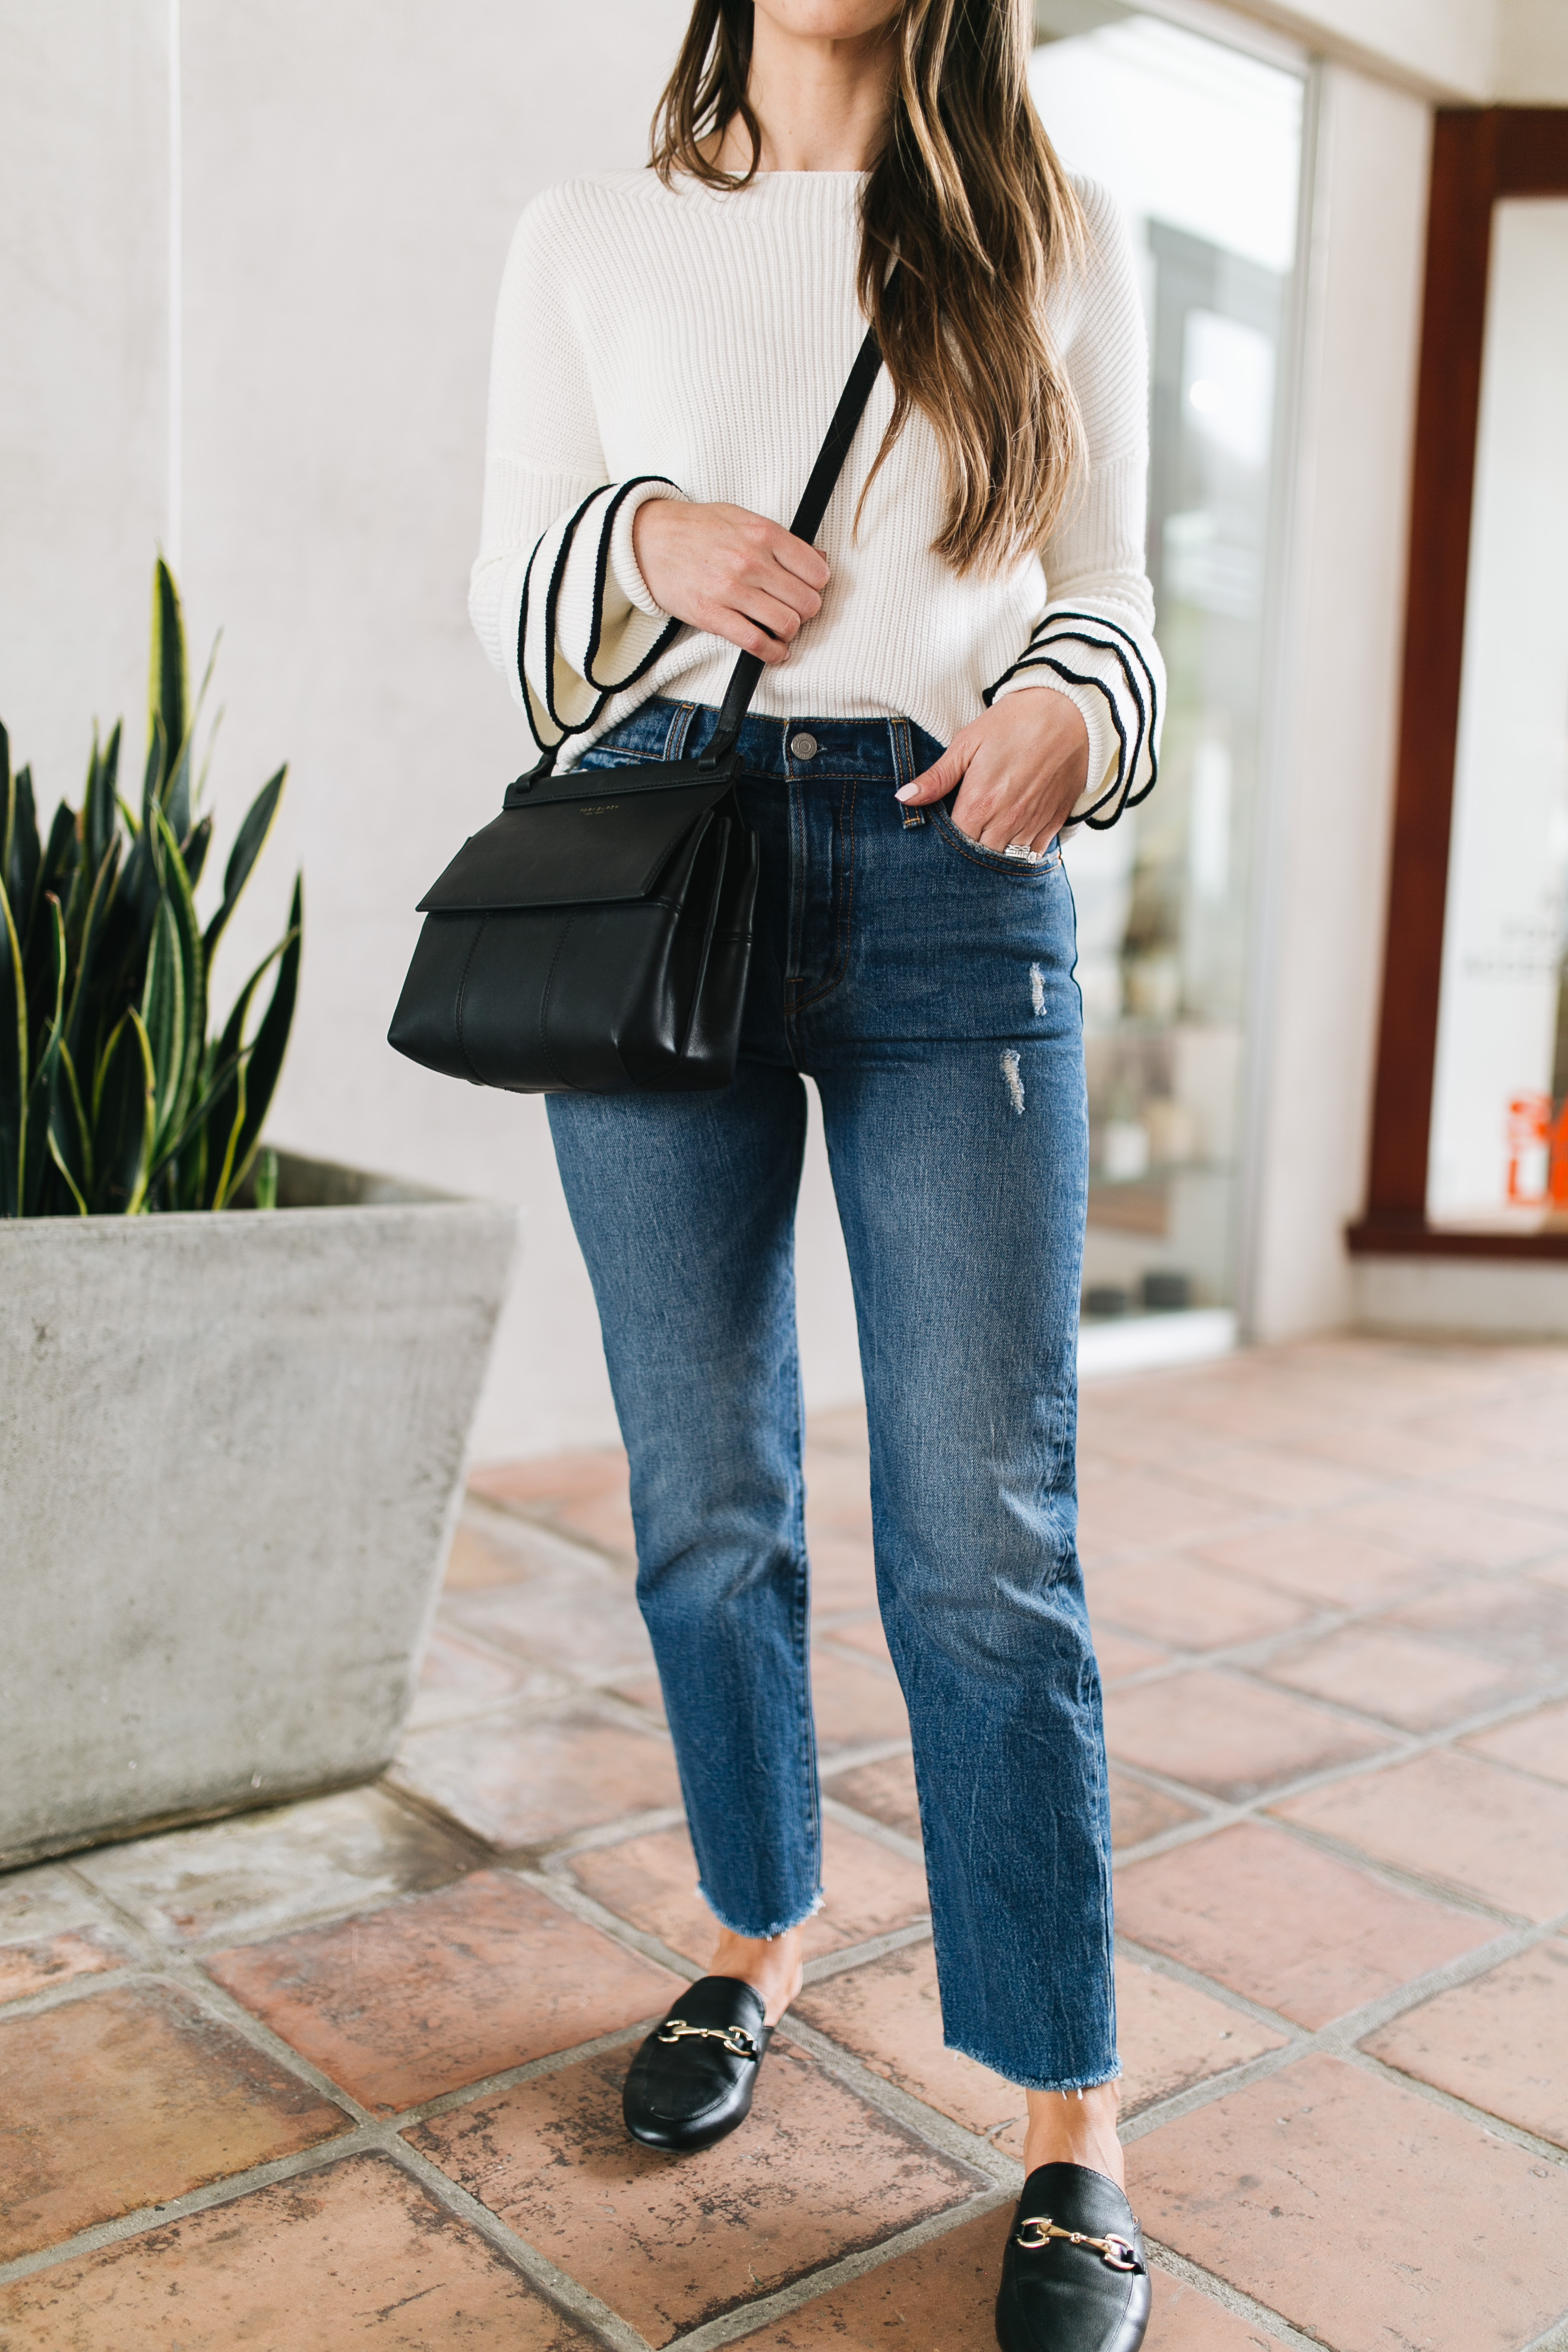 Style blogger Daryl-Ann Denner shares a huge trend for Fall 2017, the ruffle sleeve sweater, and styles an outfit with Levi's and Gucci mules